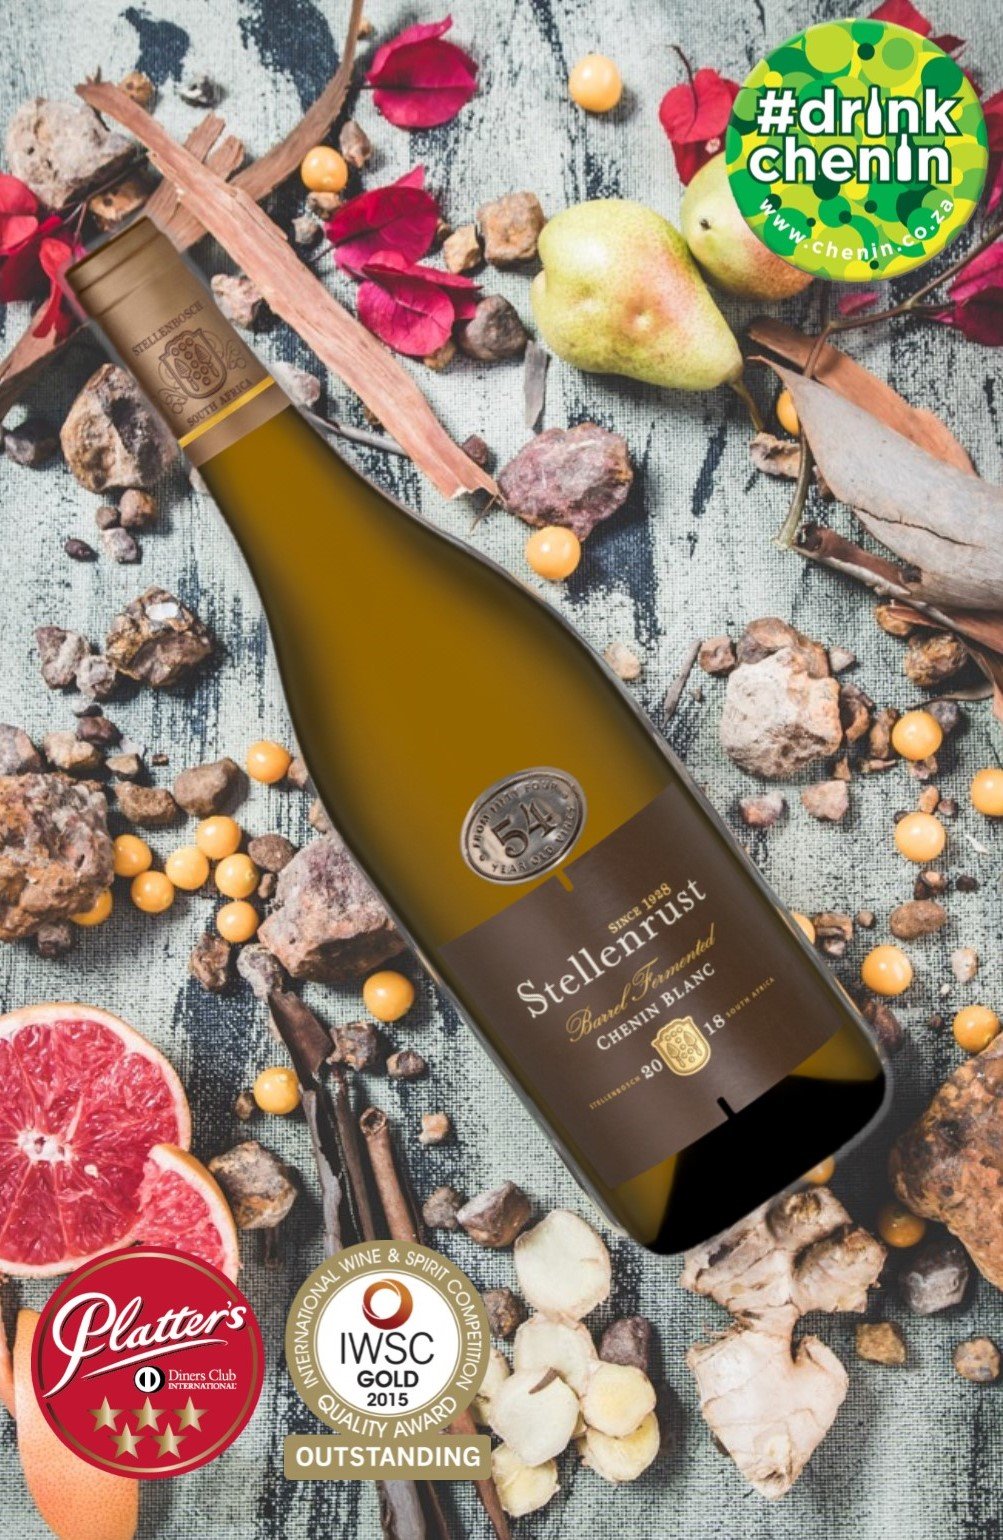 Make A Toast To Chenin Blanc With This Barrel-fermented Wine From Stellenrust photo